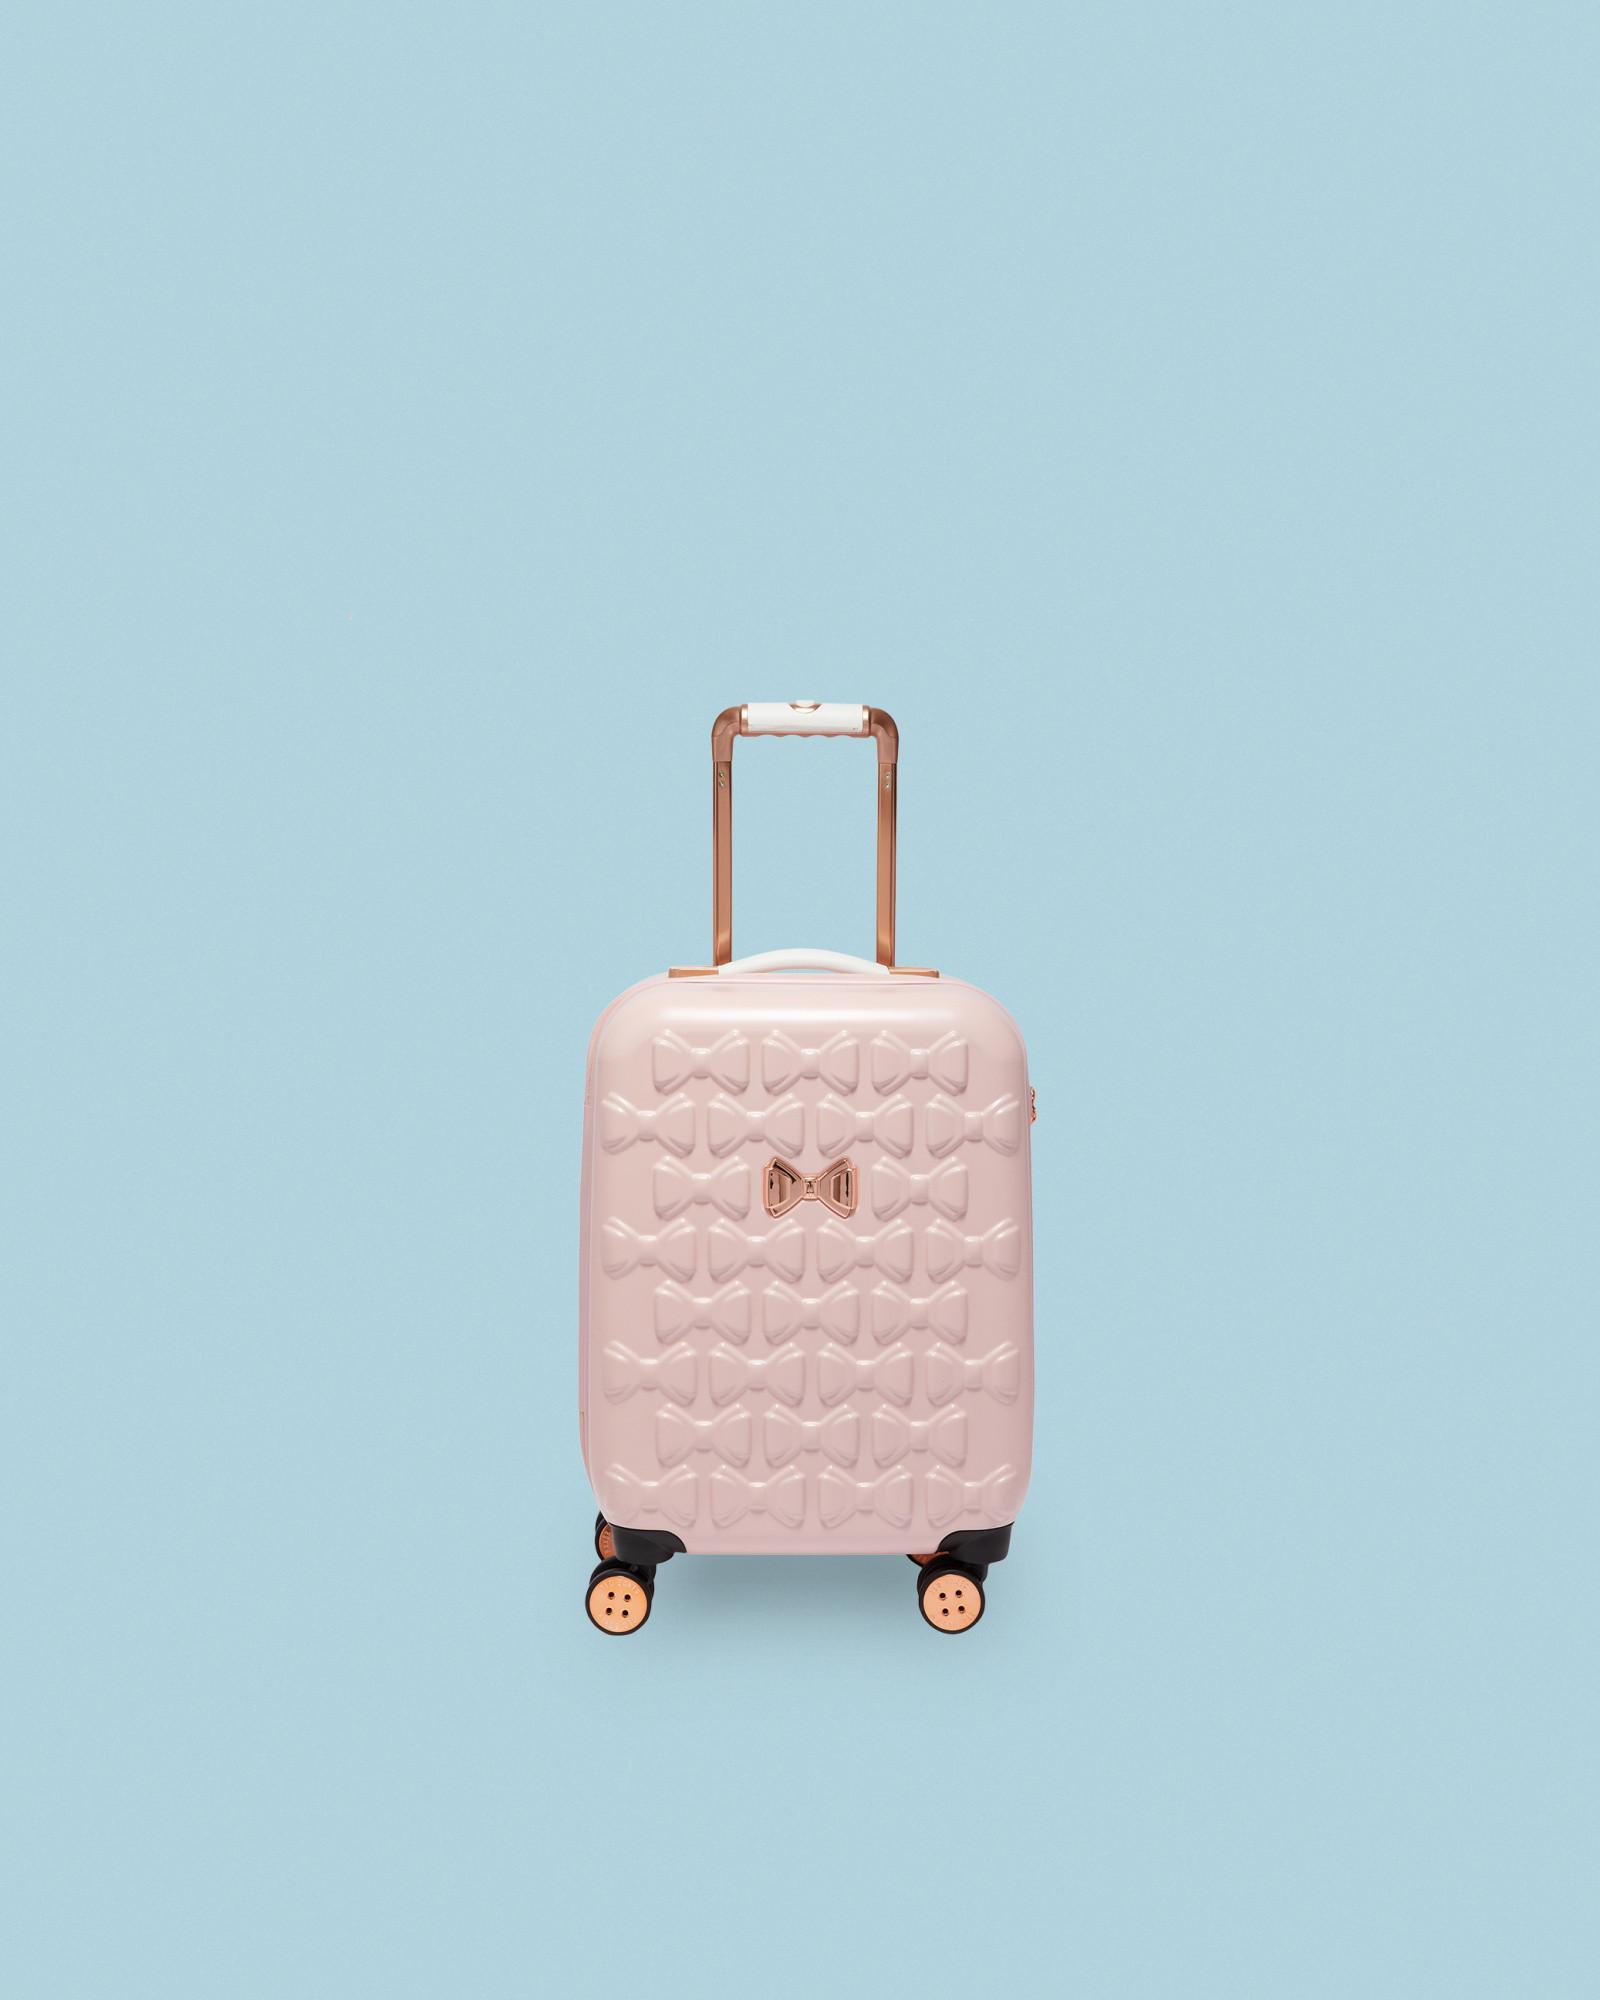 feca8430171d8 Lyst - Ted Baker Bow Detail Small Suitcase in Pink